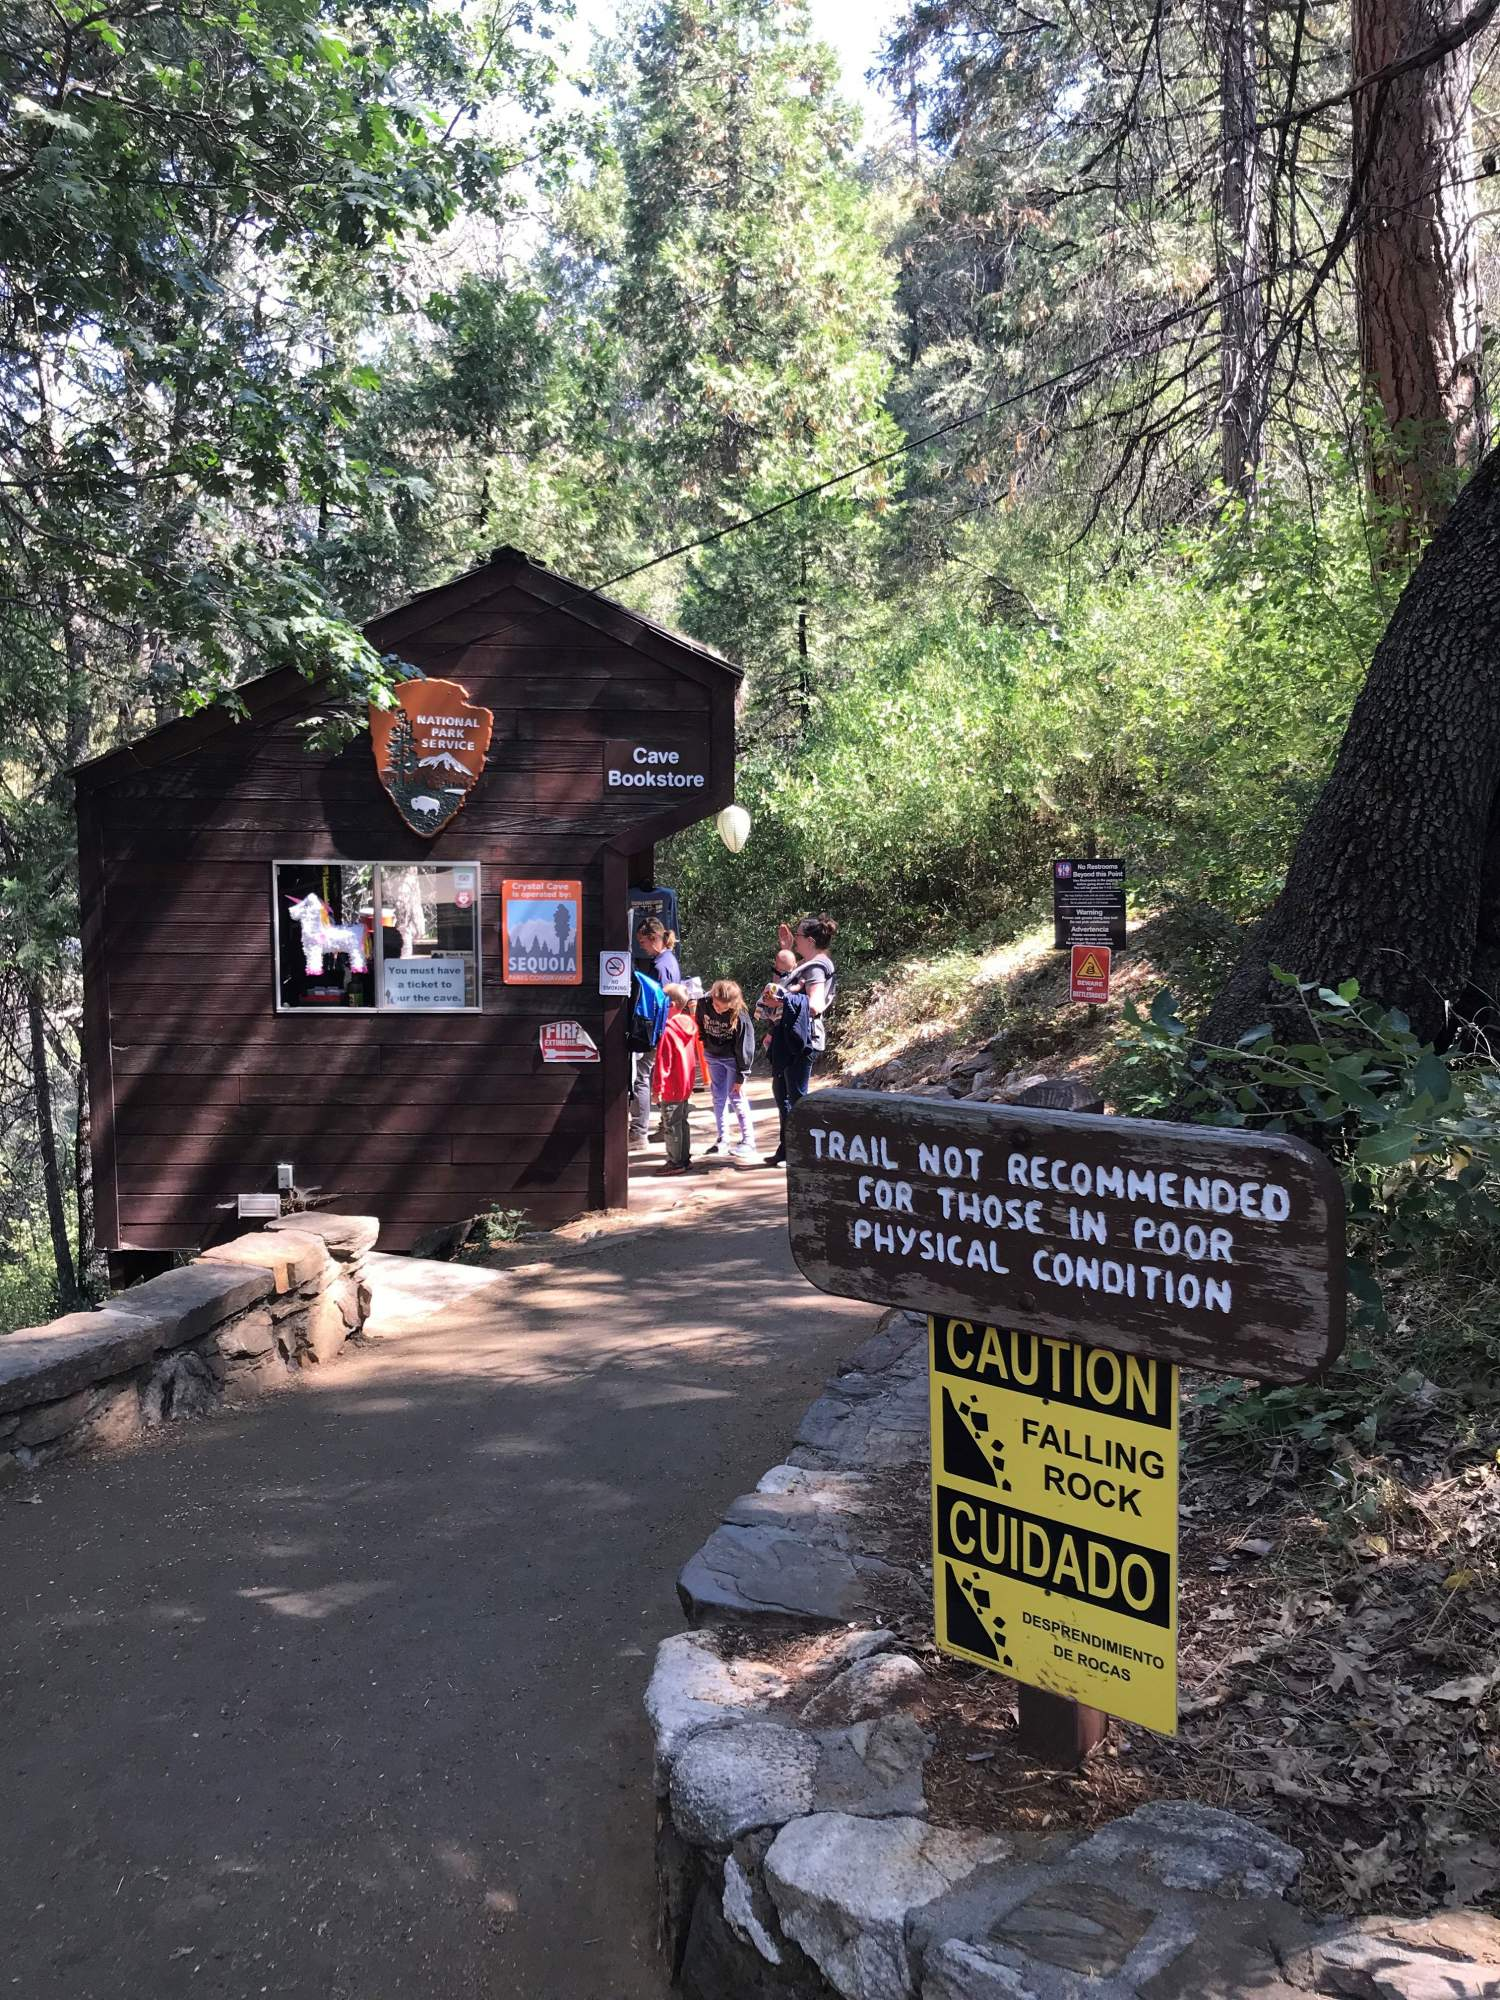 Camp bookstore and trail at Sequoia National Park